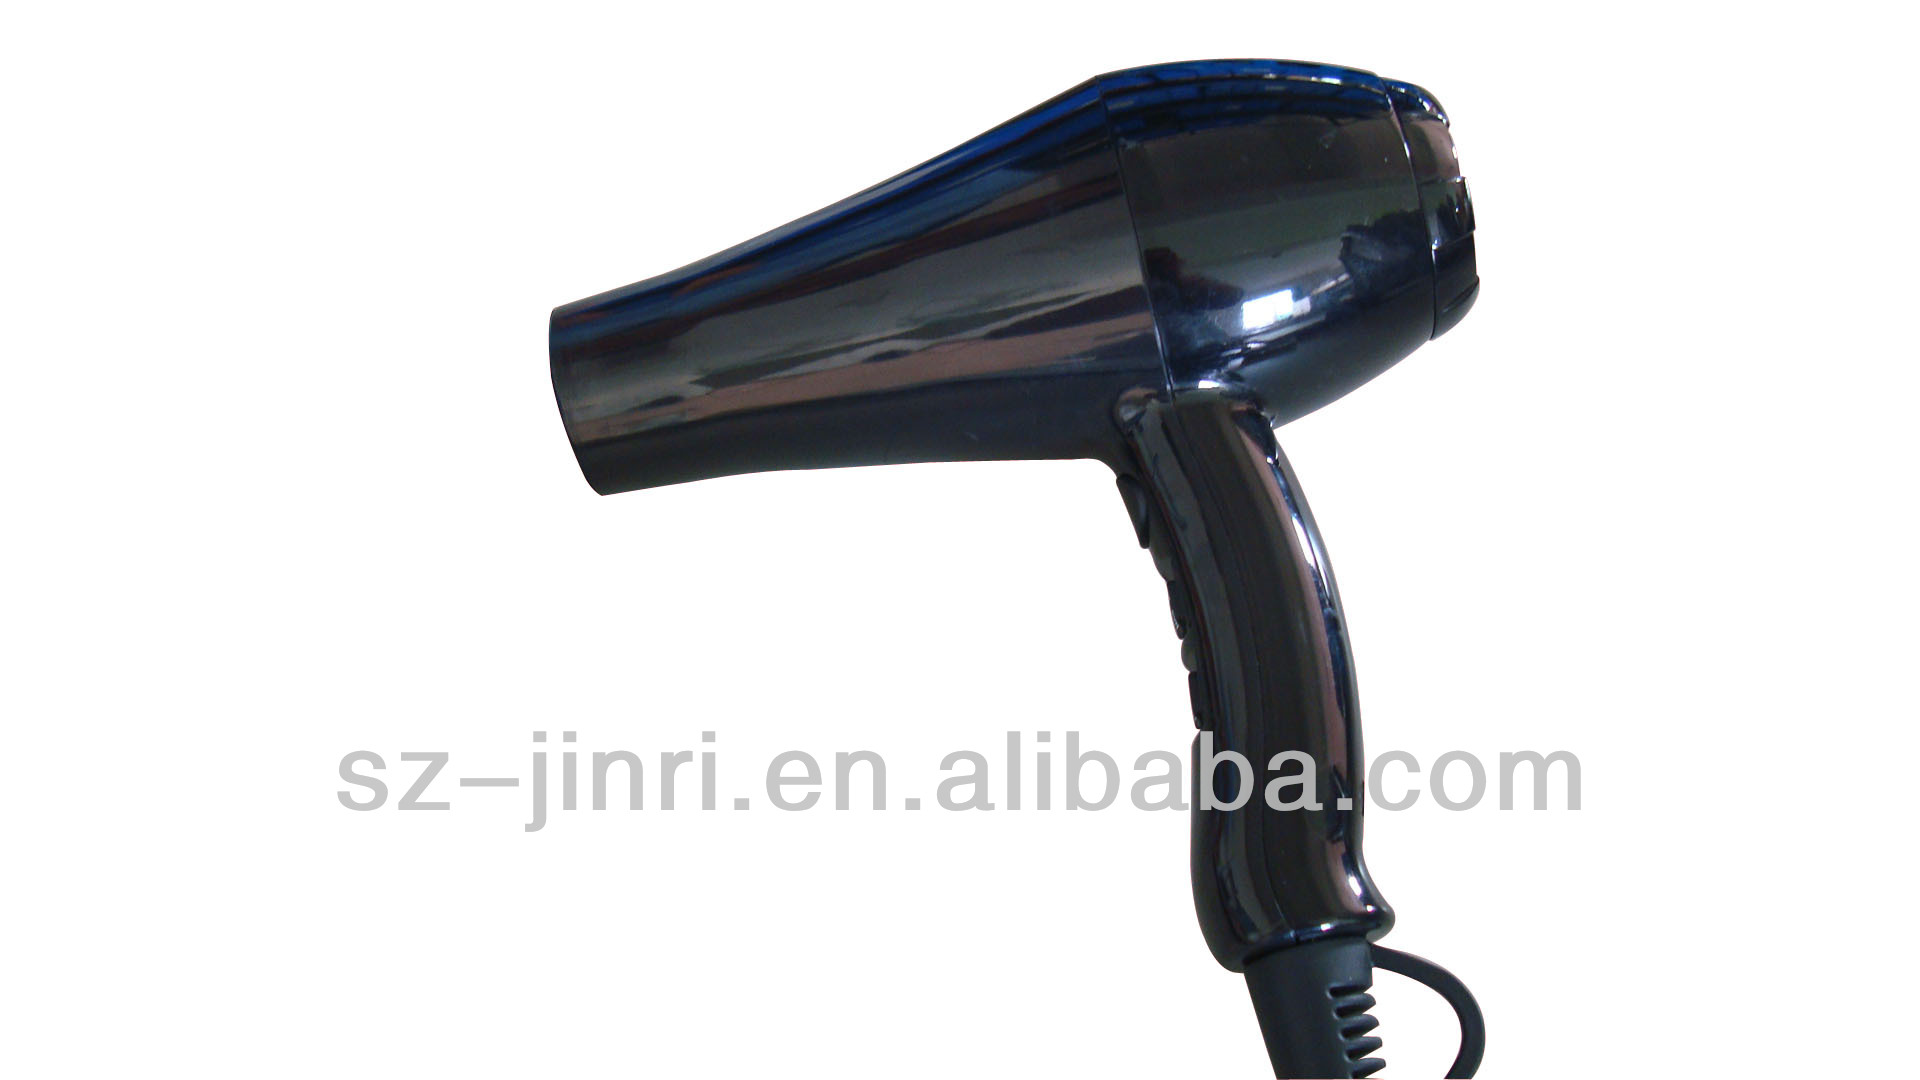 Hot selling professional 1875W stand hair salon hood blow hair dryers